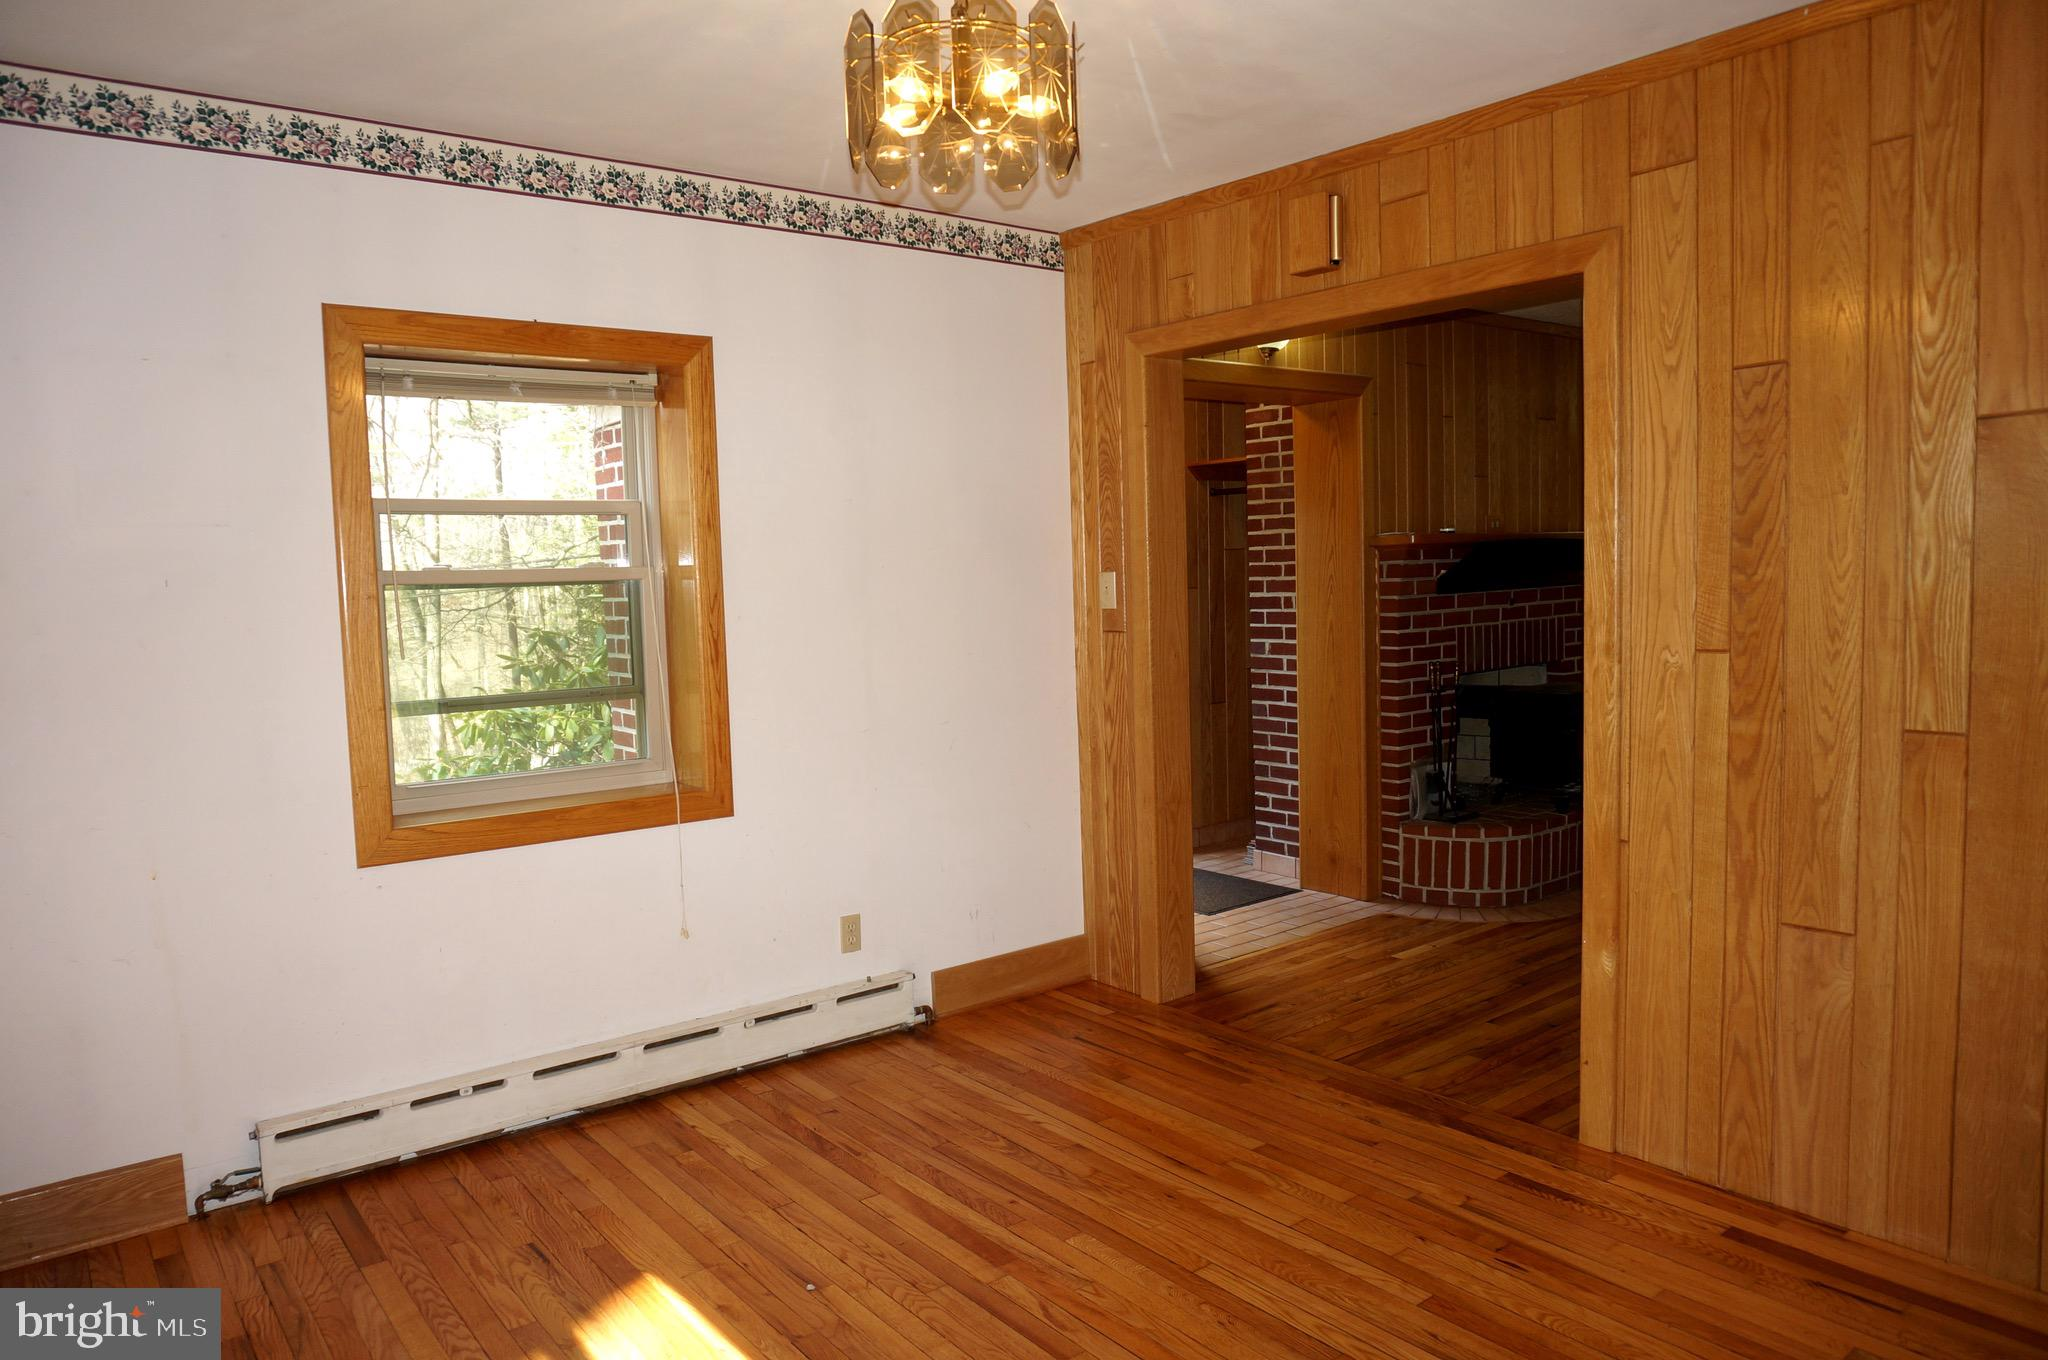 Dining Room into Front Entry Hall